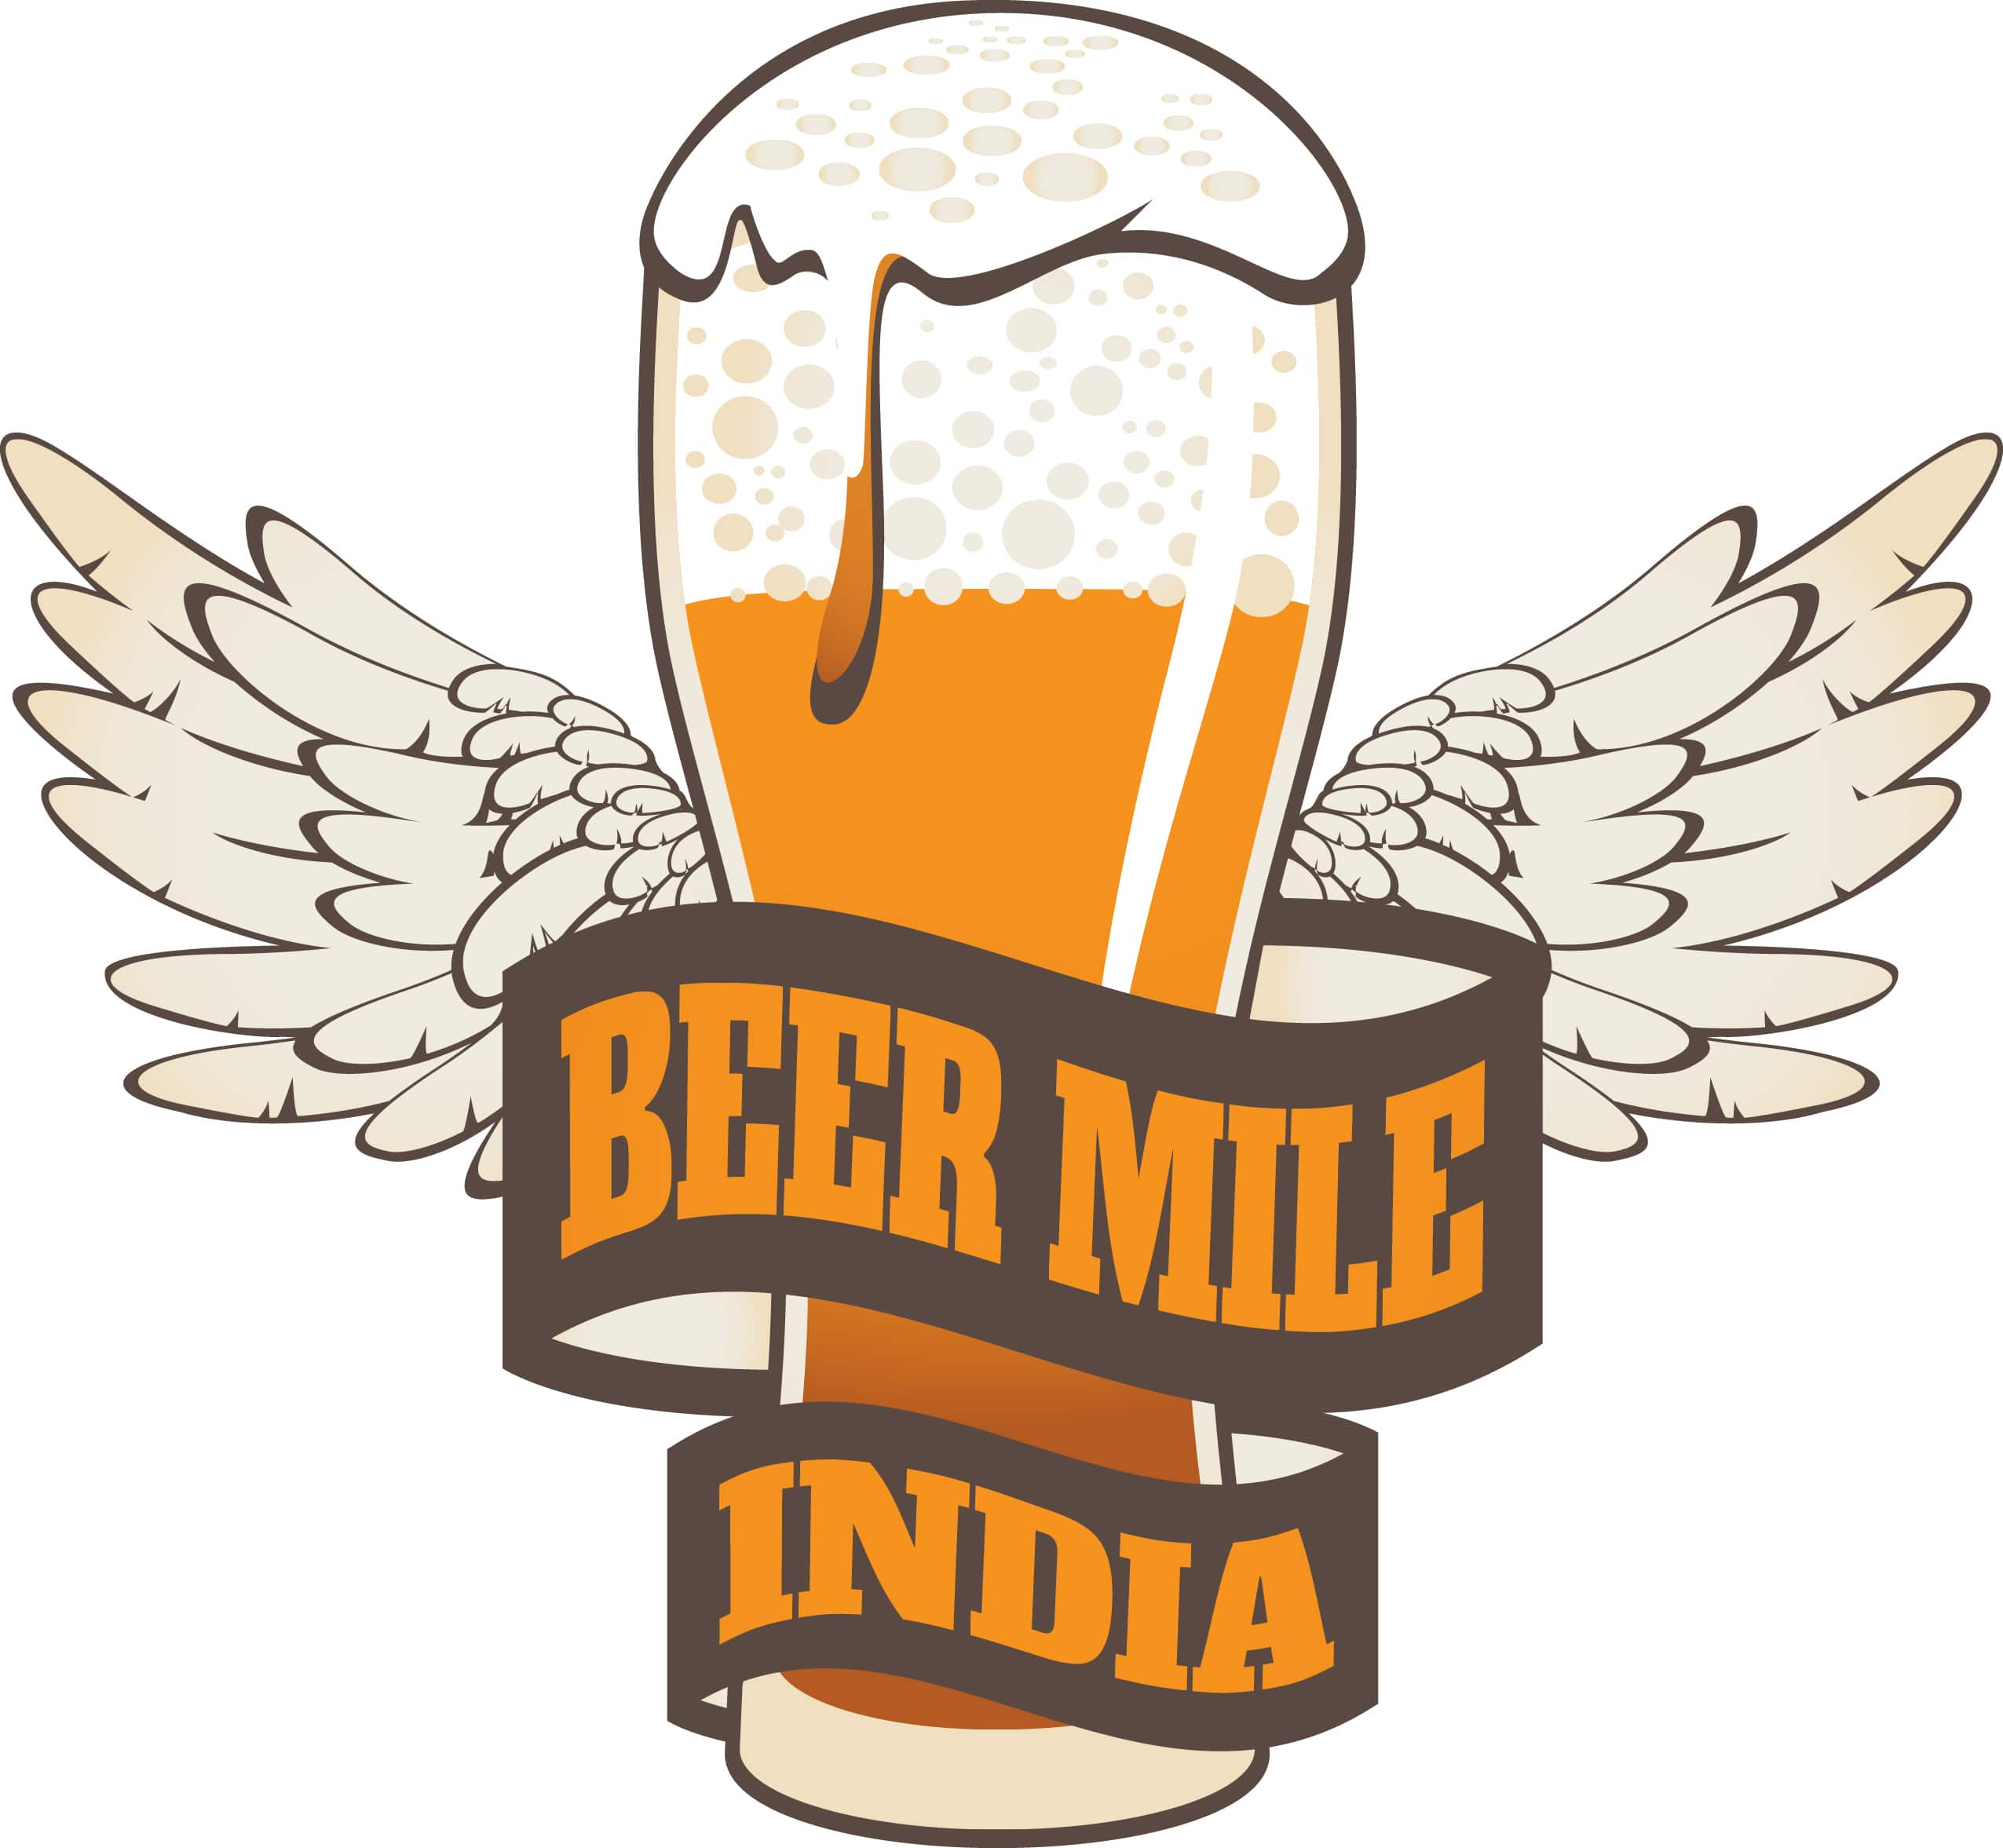 India First Ever Beer Mile Indigo 919